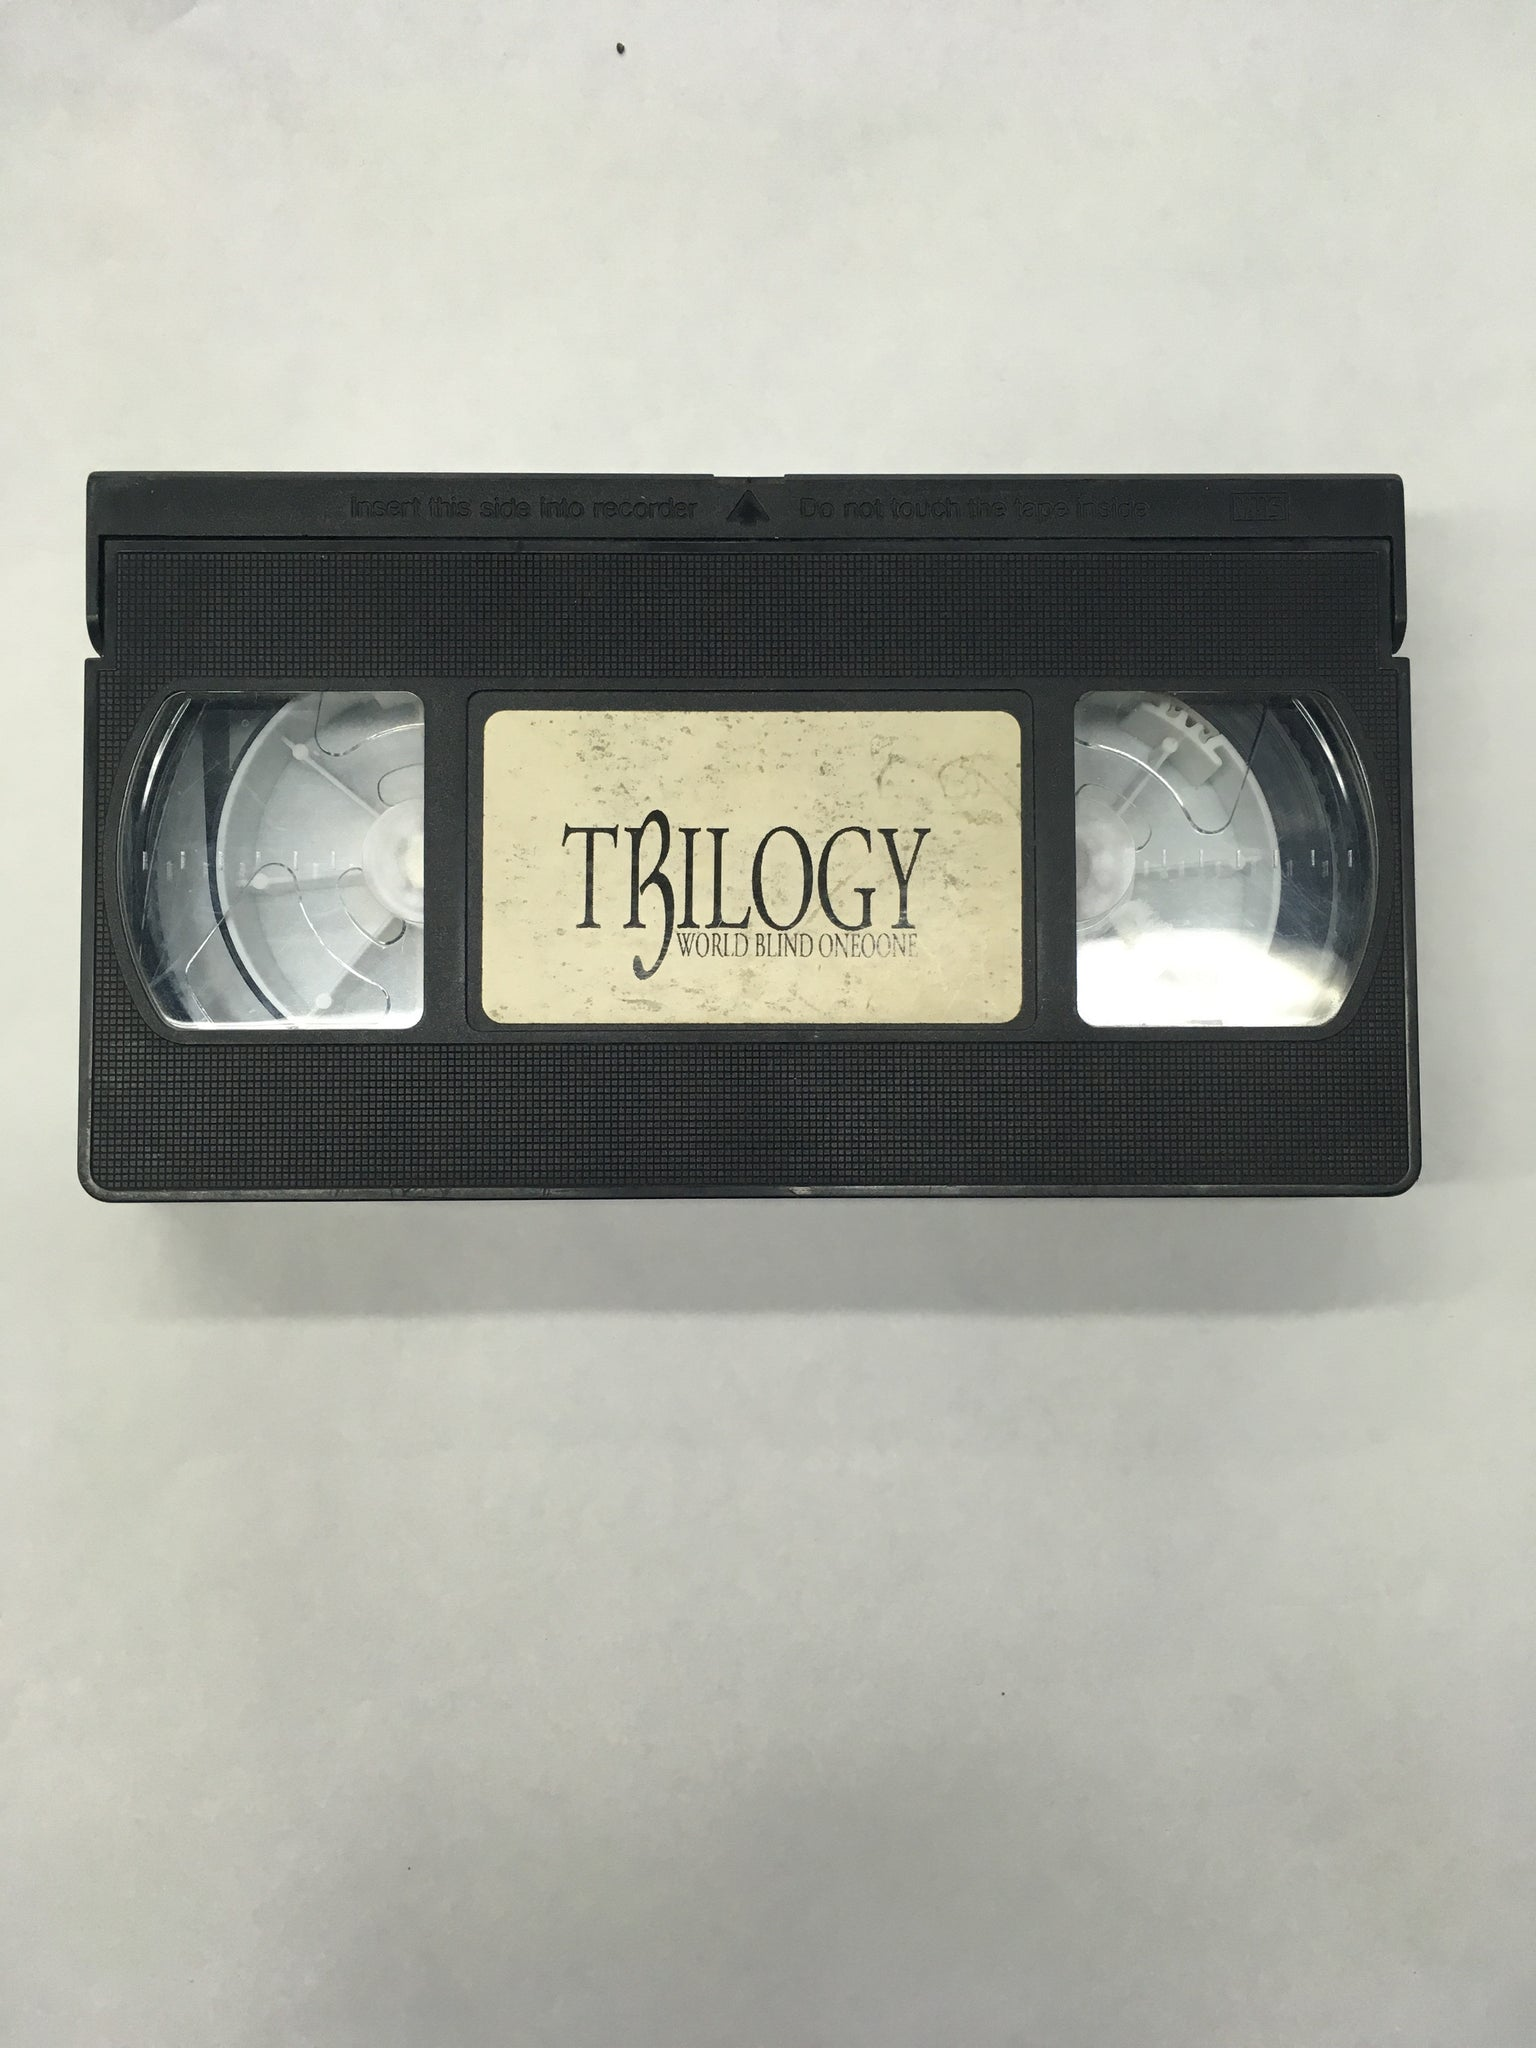 Trilogy World Blind Oneoone VHS